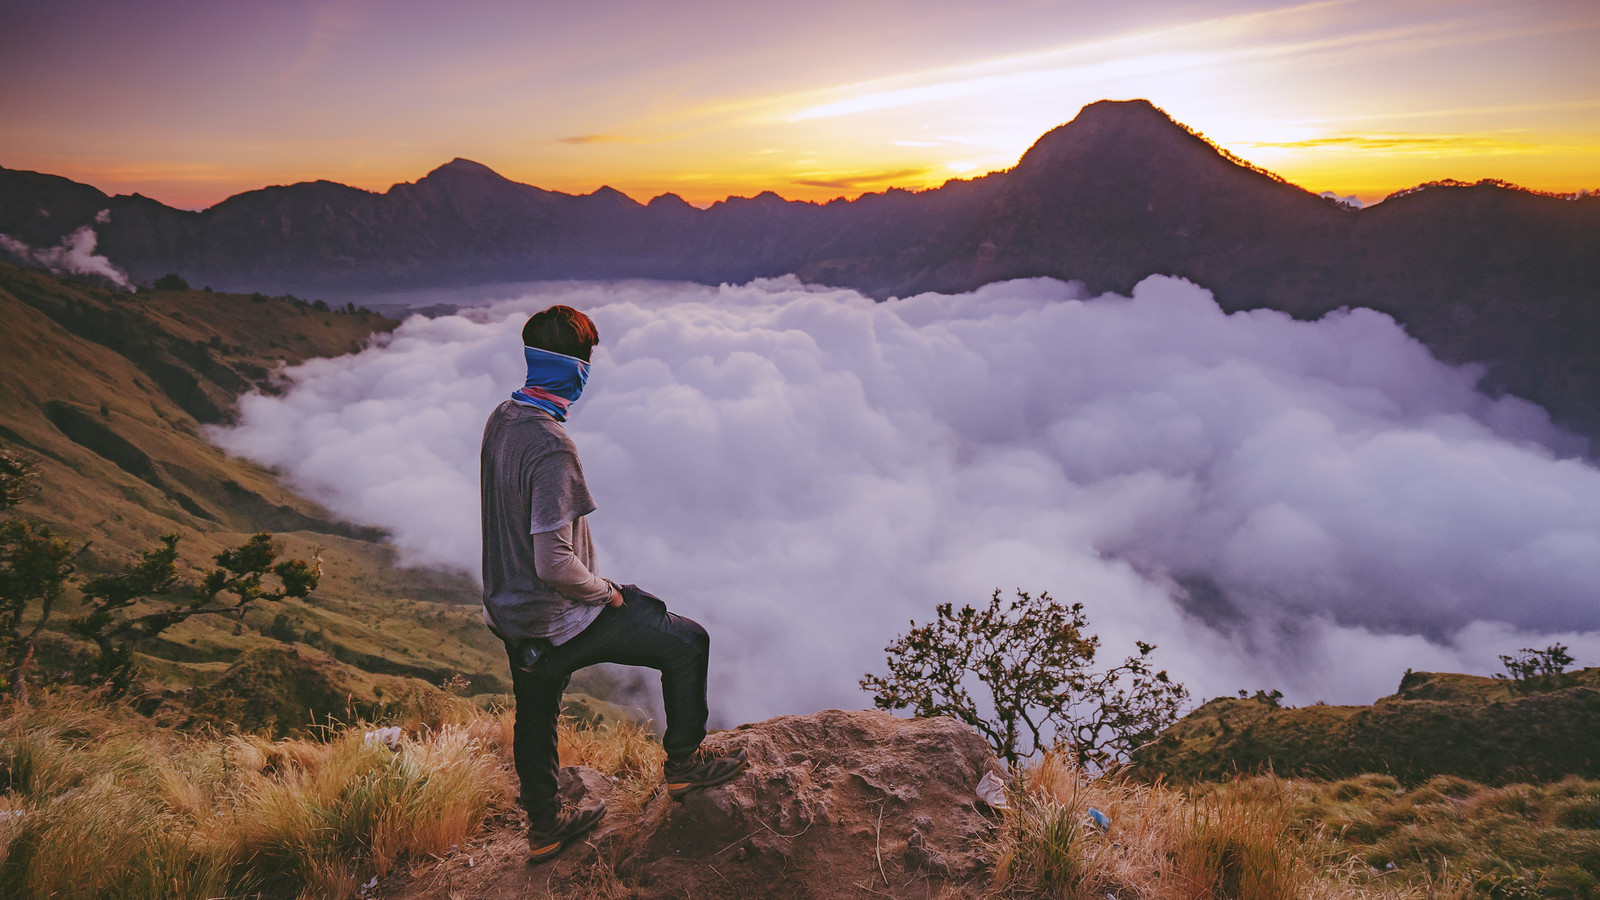 Latest news on Mount Rinjani 2021